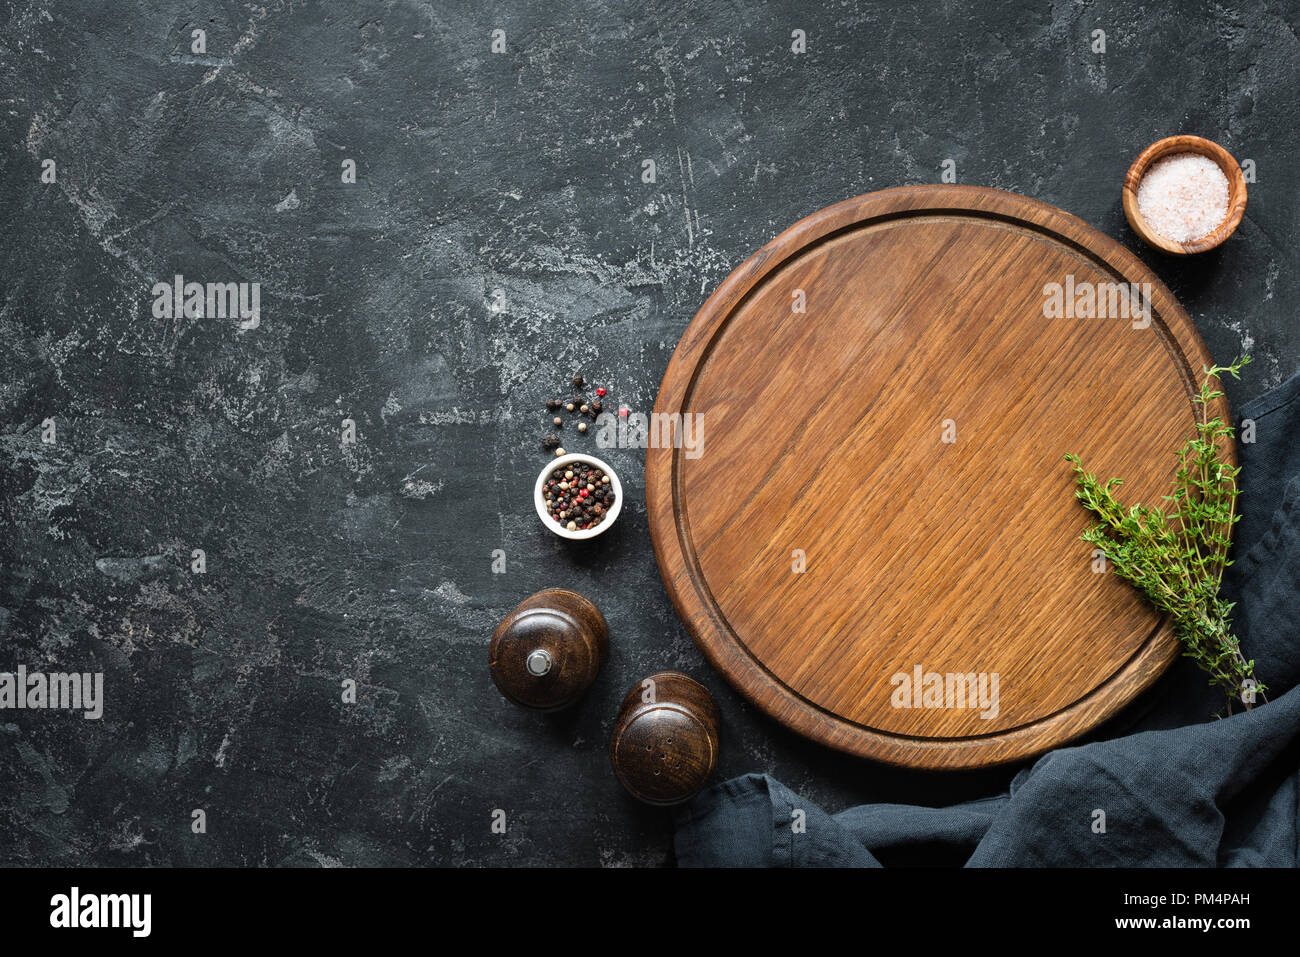 Spices Herbs Cutting Board For Cooking Round Wooden Cutting Board On Black Concrete Backdrop Top View With Copy Space For Text Menu Recipe Mock Stock Photo Alamy